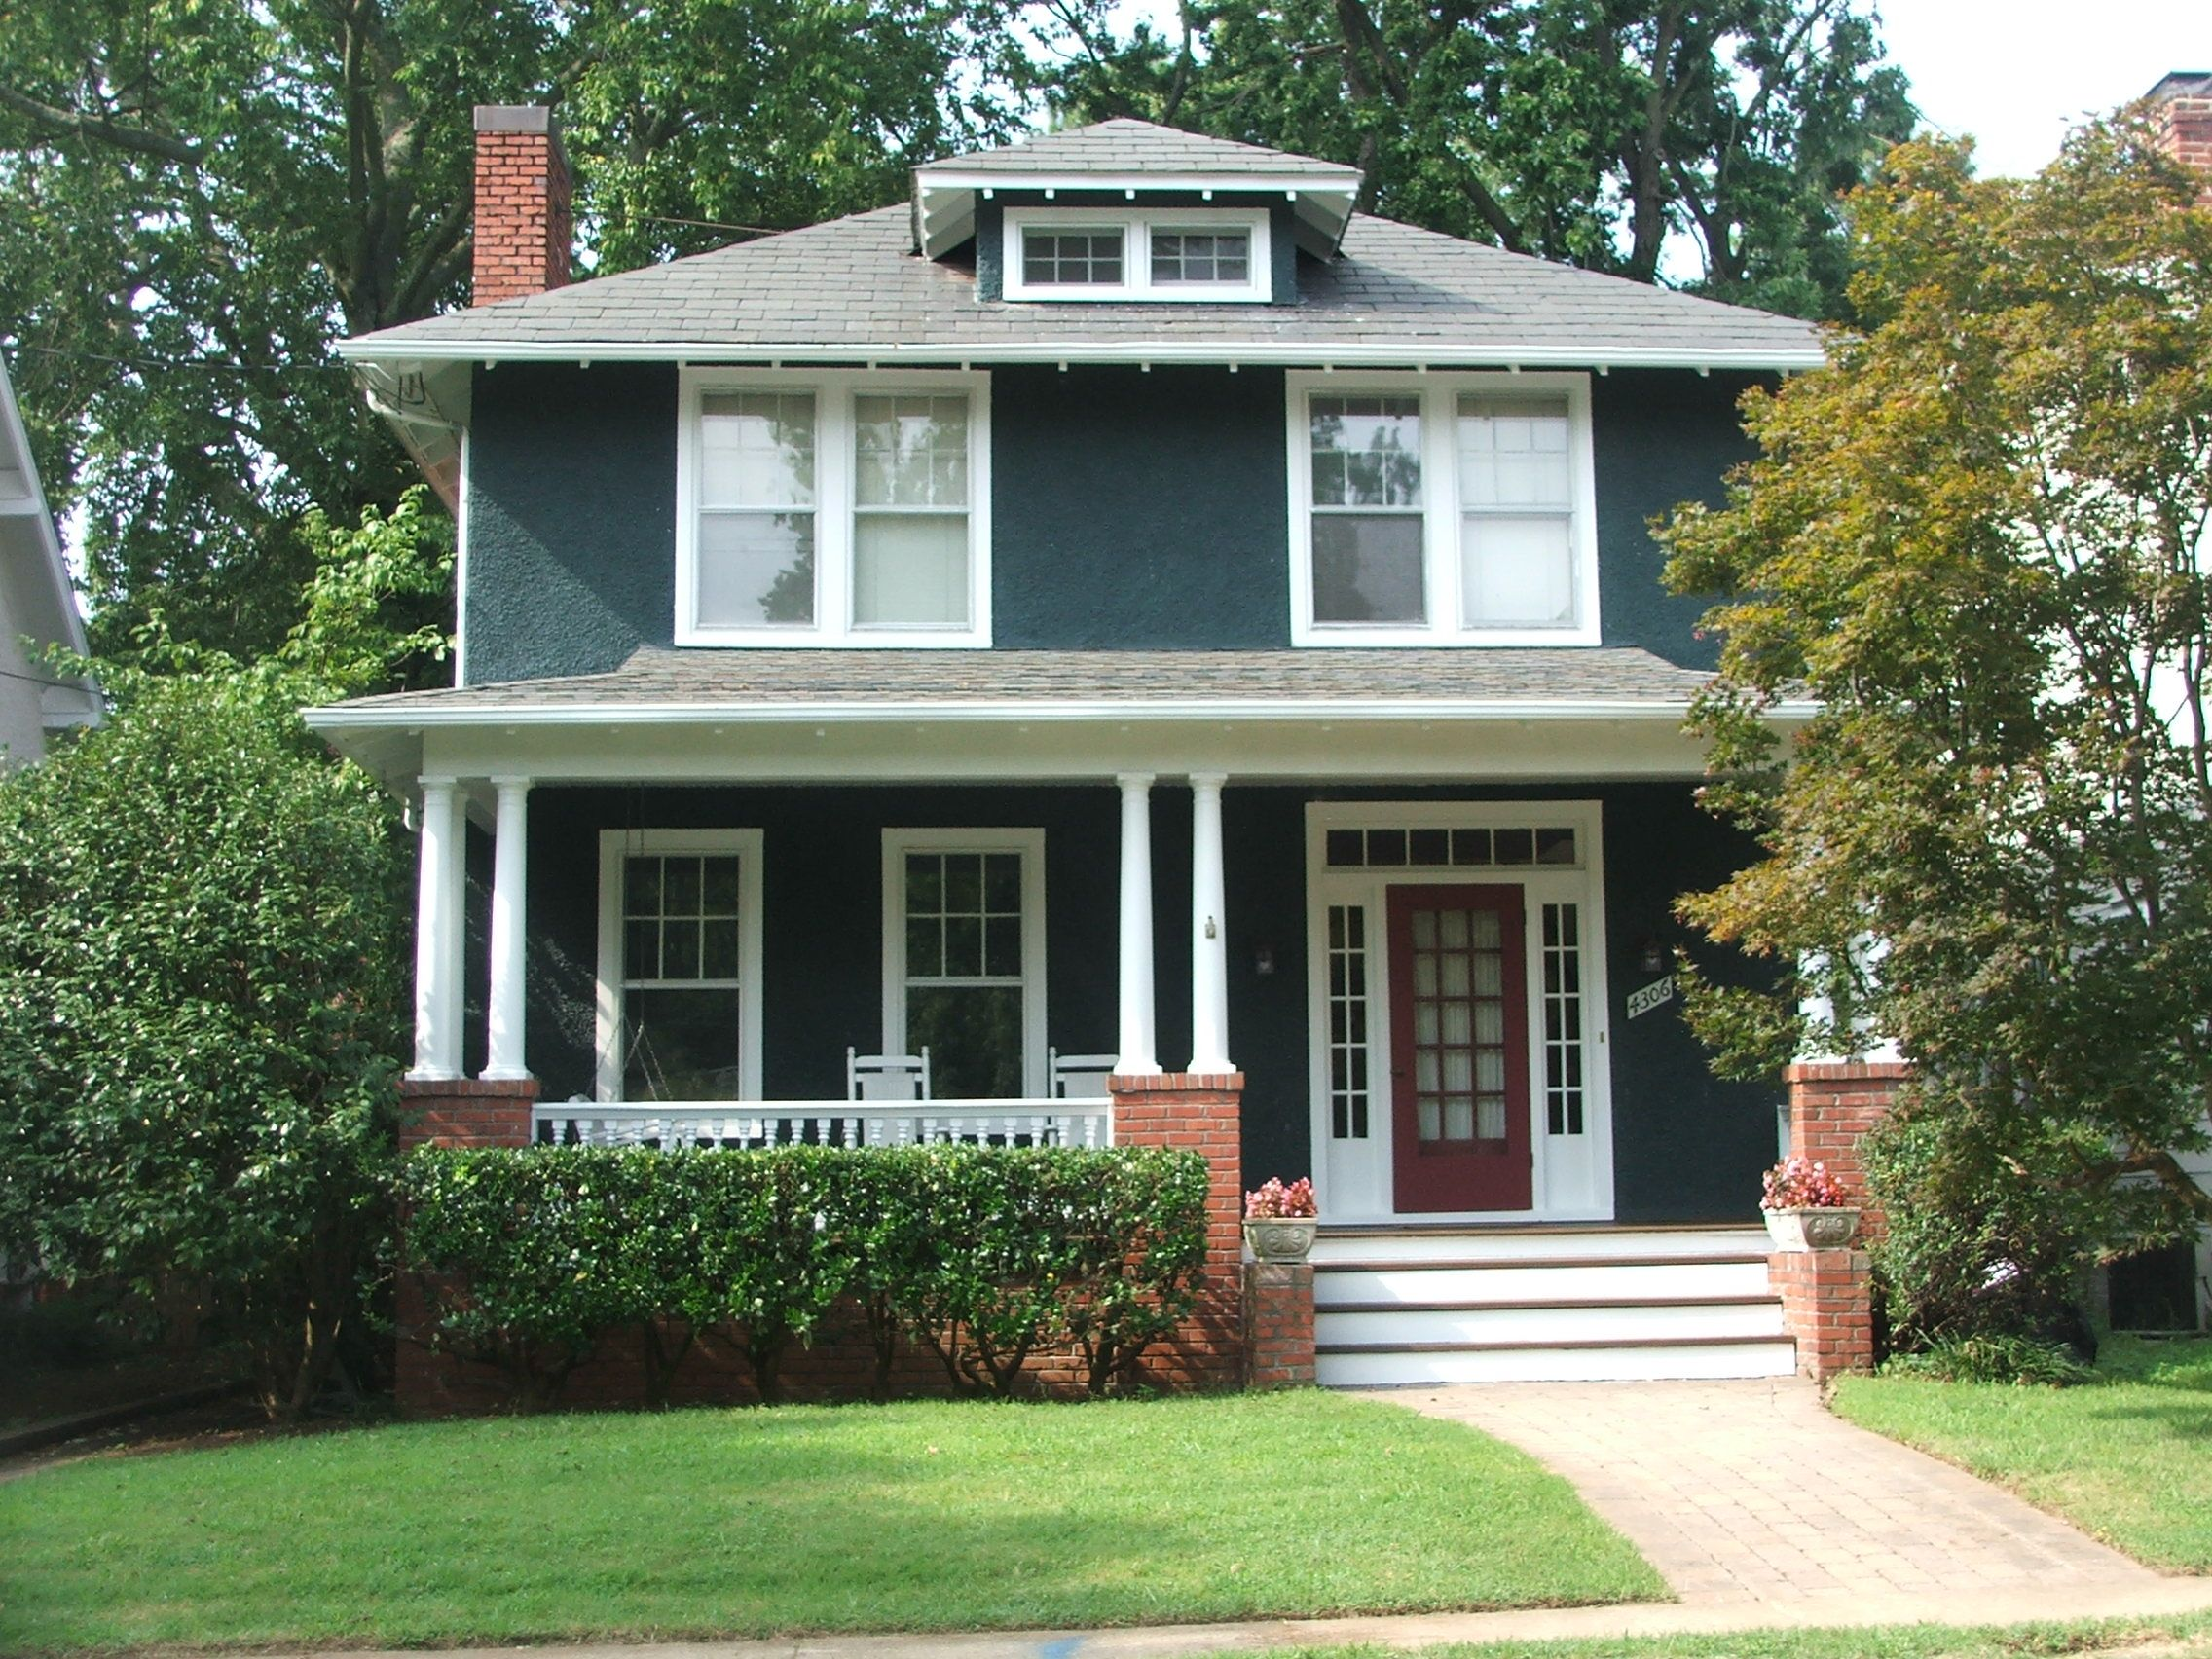 Diy Idea For Old Suitcase American Houses Front Porches And Porch